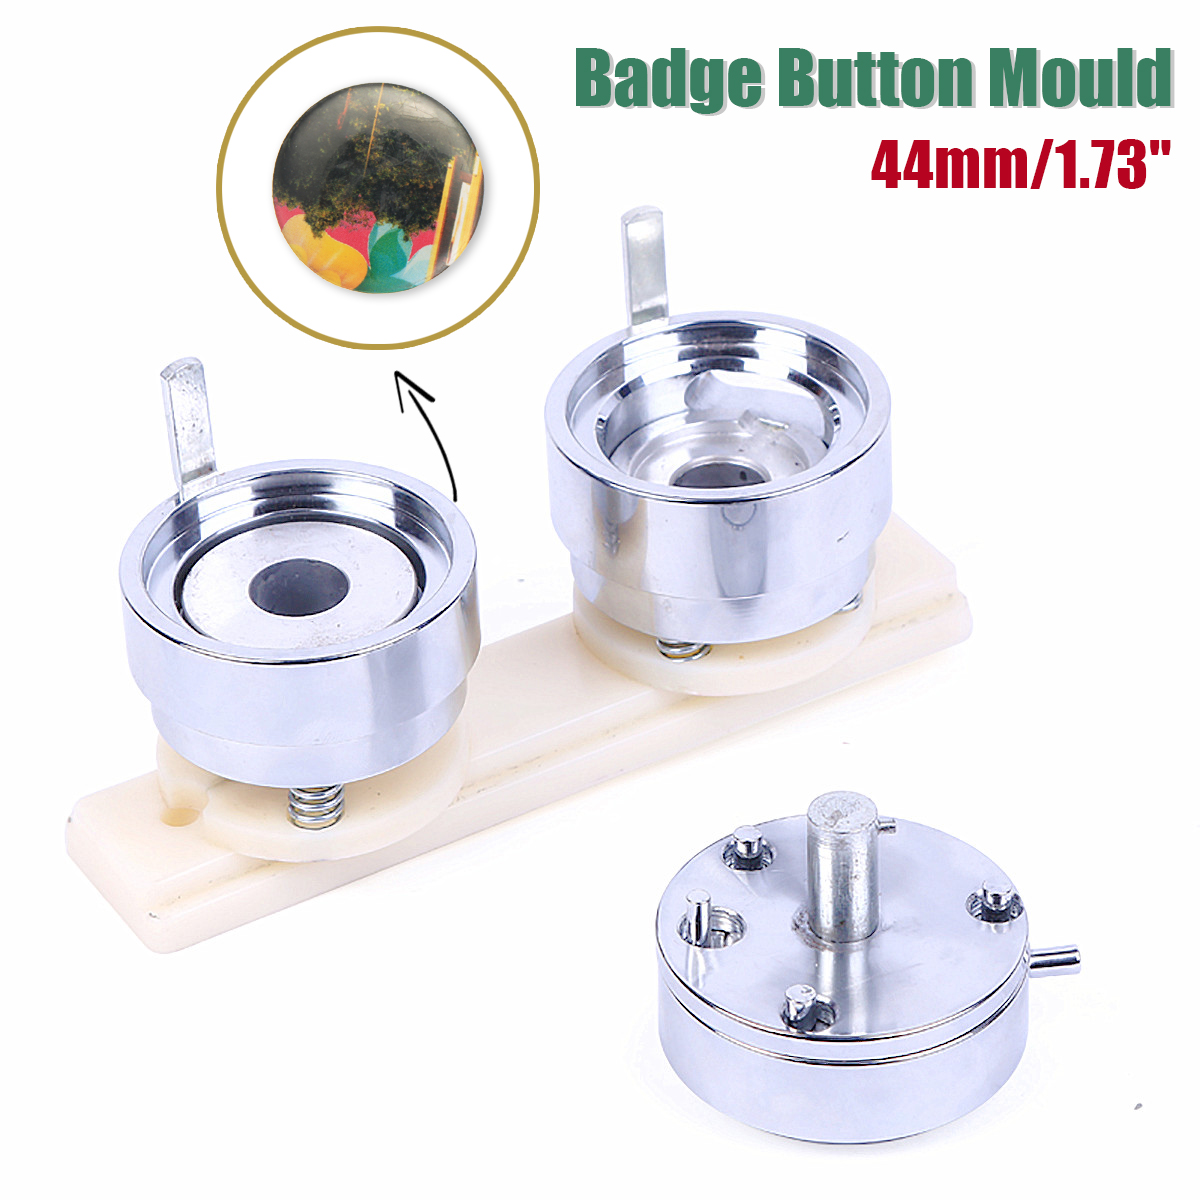 44mm 1.73 Badge Pin Making Mould Button Maker Punch Press Machine Metal DIY44mm 1.73 Badge Pin Making Mould Button Maker Punch Press Machine Metal DIY